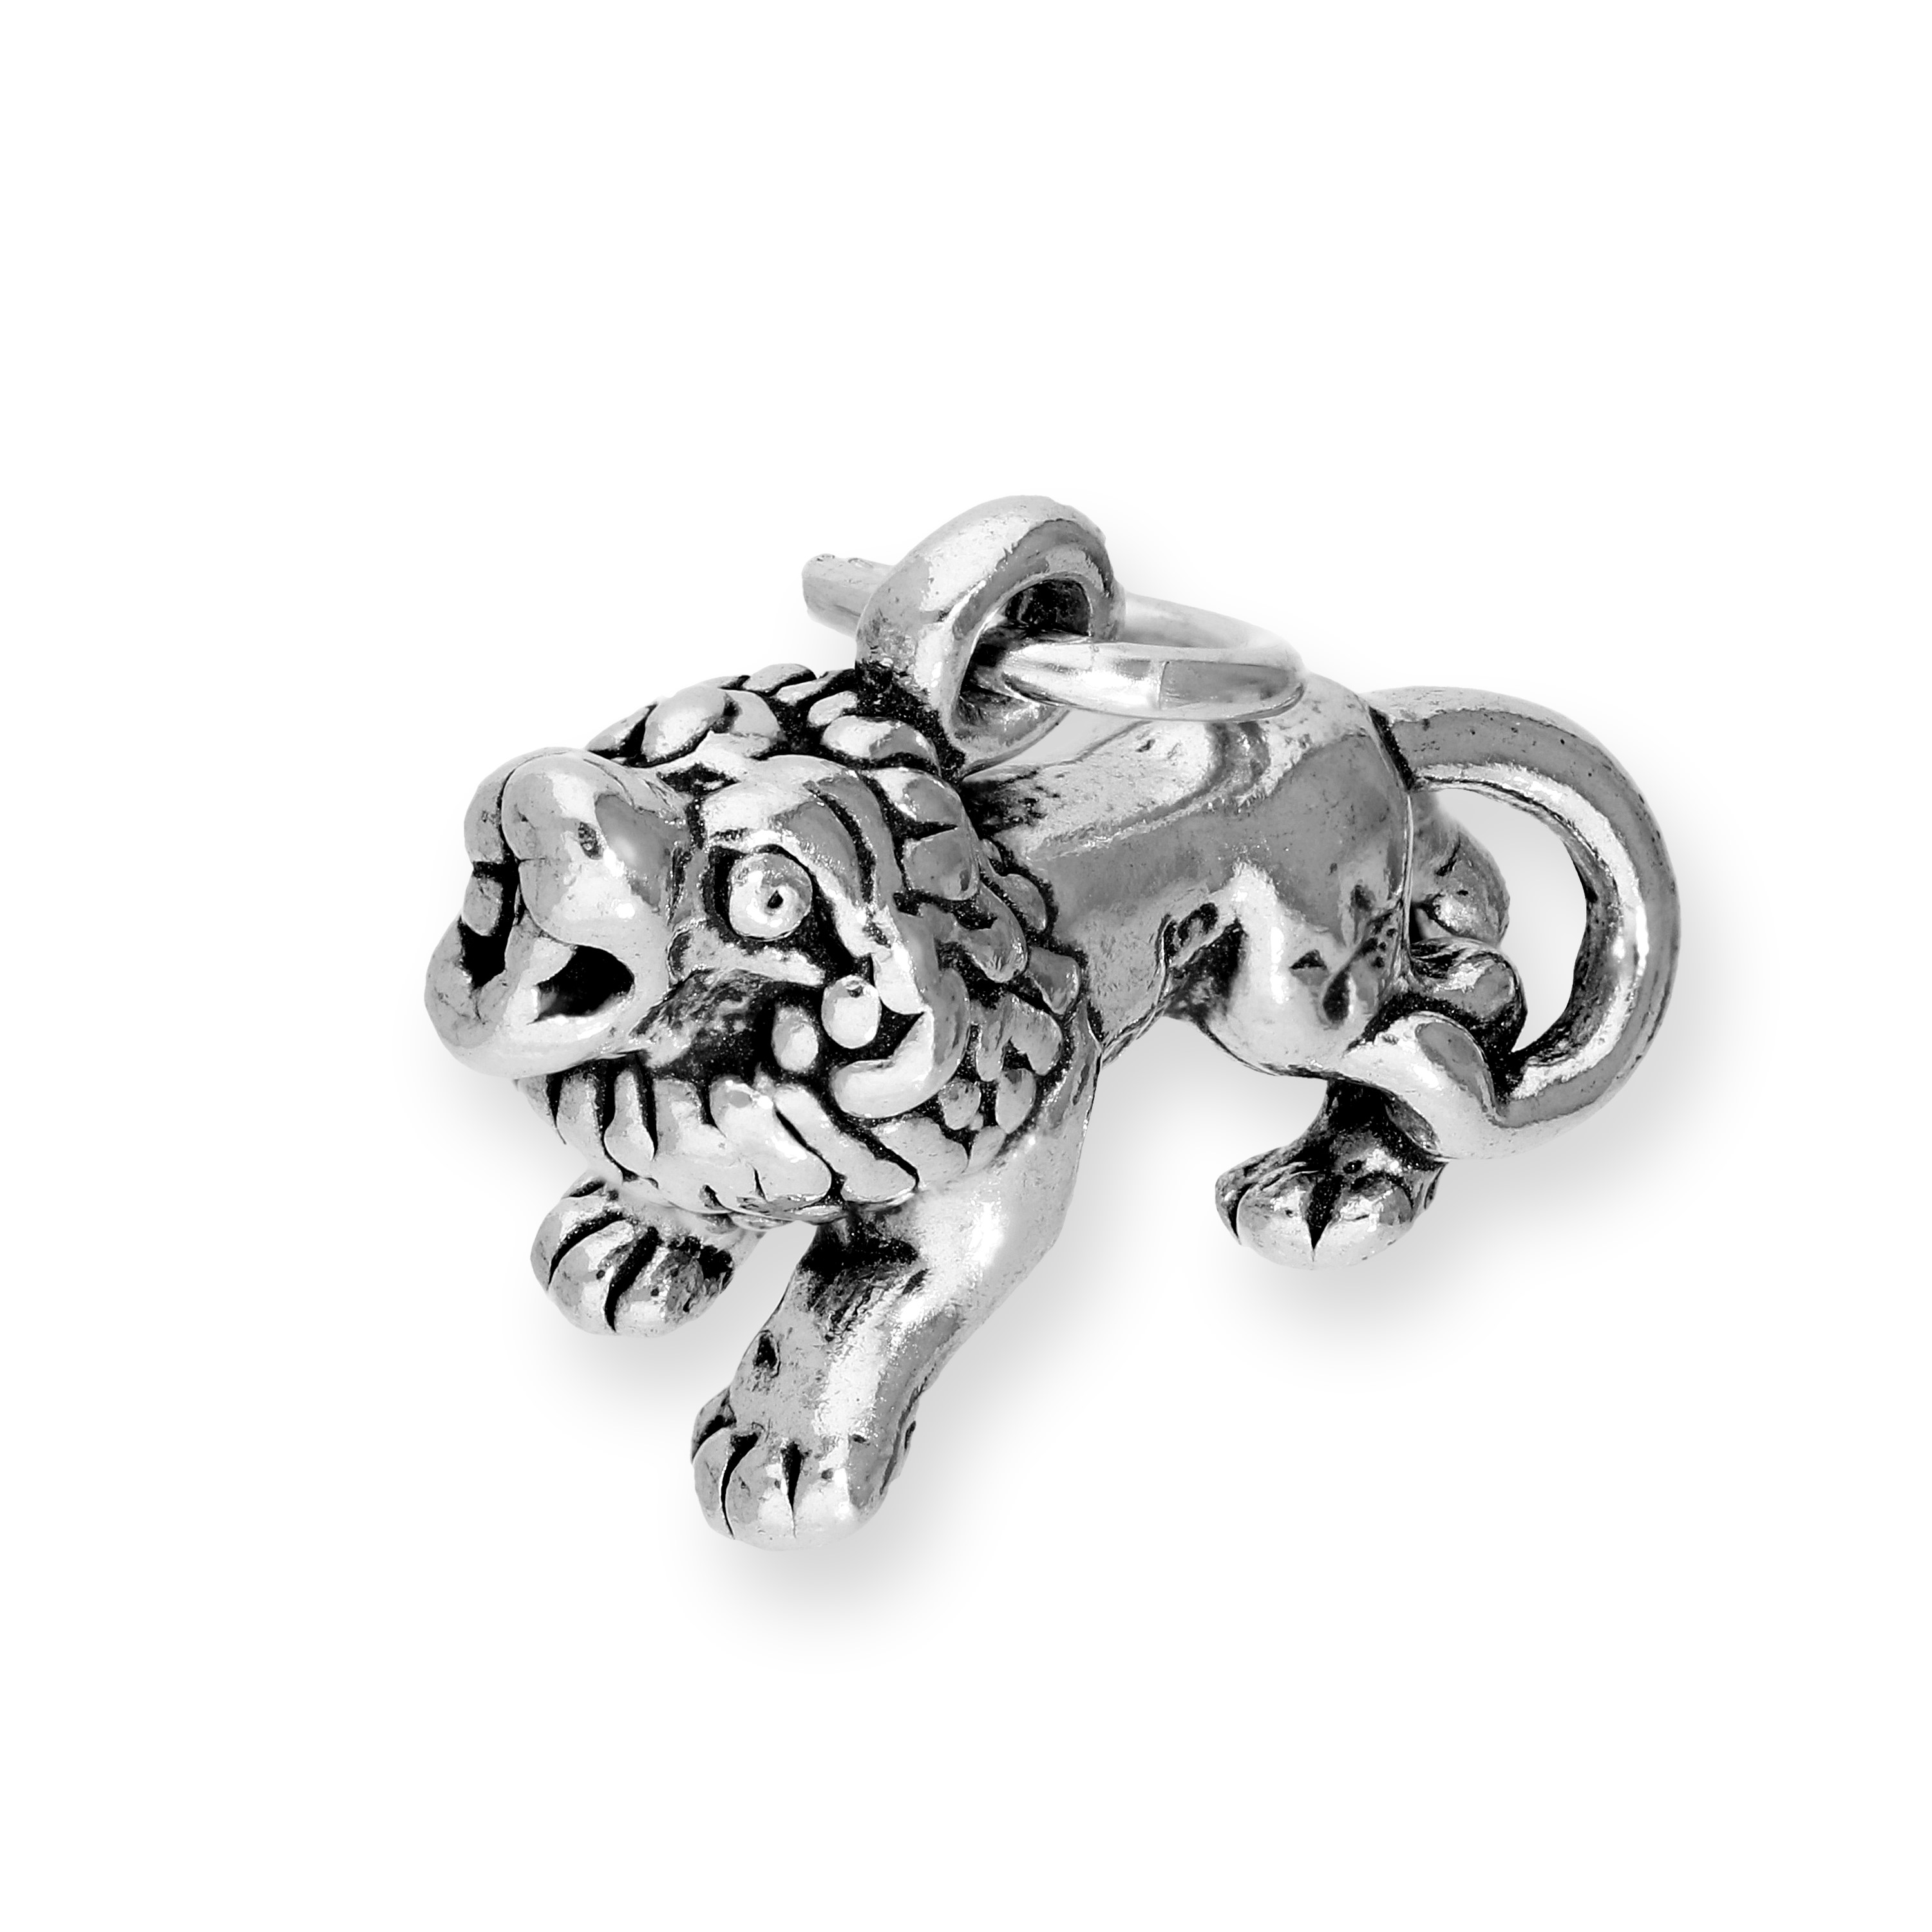 An image of Sterling Silver Roaring Lion Charm